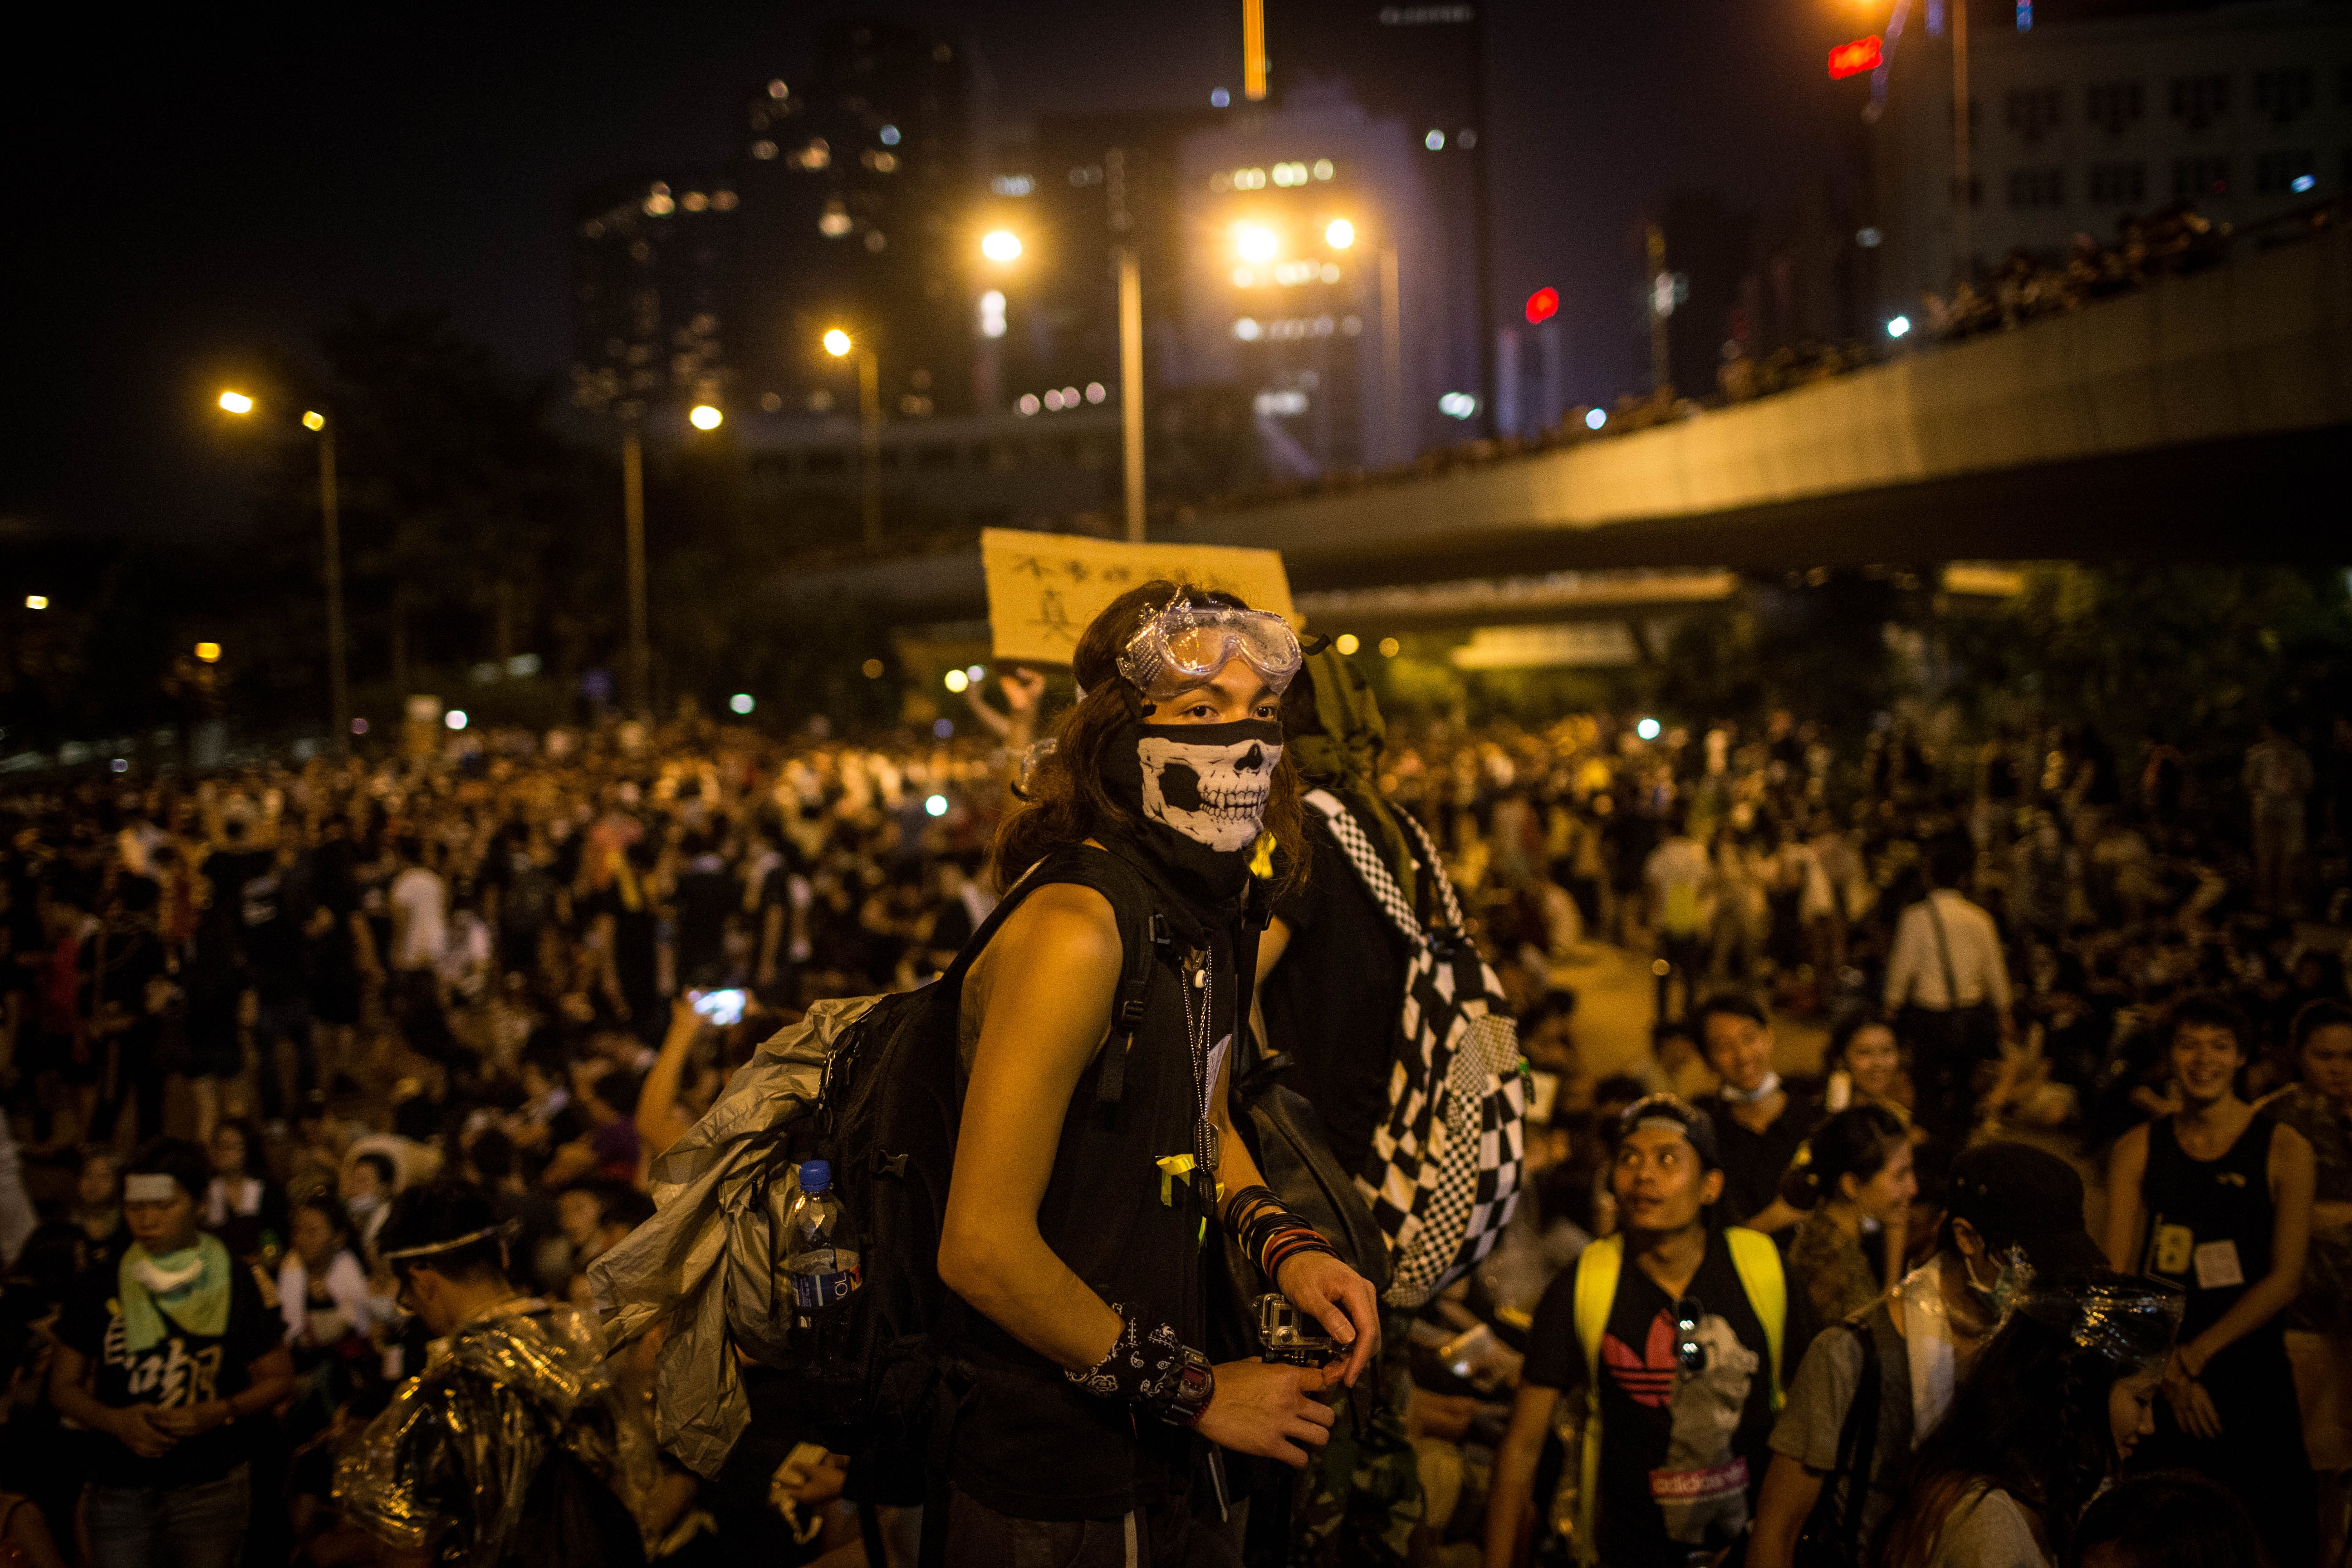 Protesters gather in the streets outside the Hong Kong government complex in Hong Kong on Sept. 29, 2014